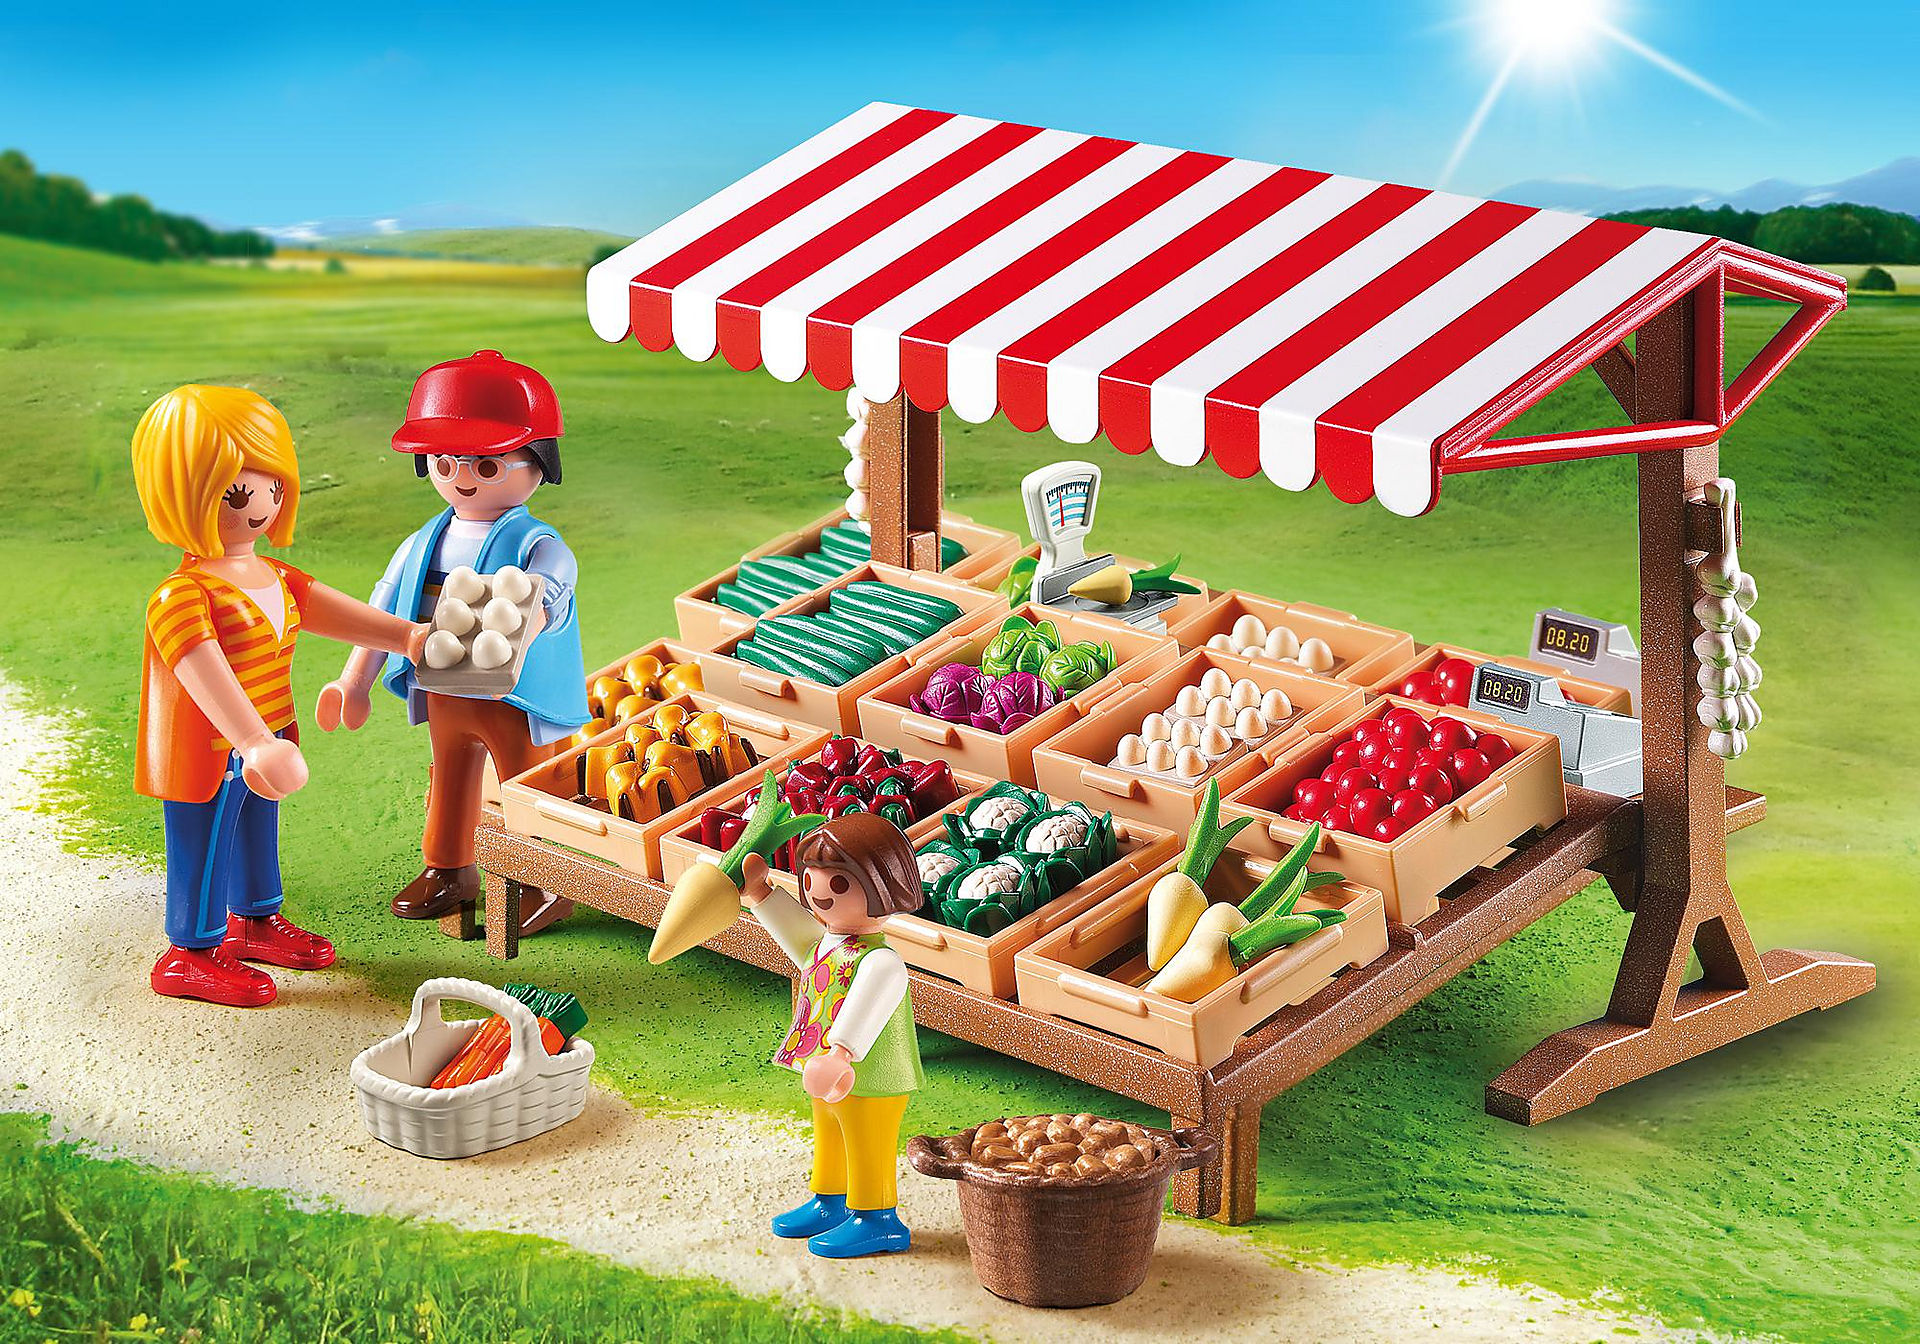 http://media.playmobil.com/i/playmobil/6121_product_detail/Farmer's Market